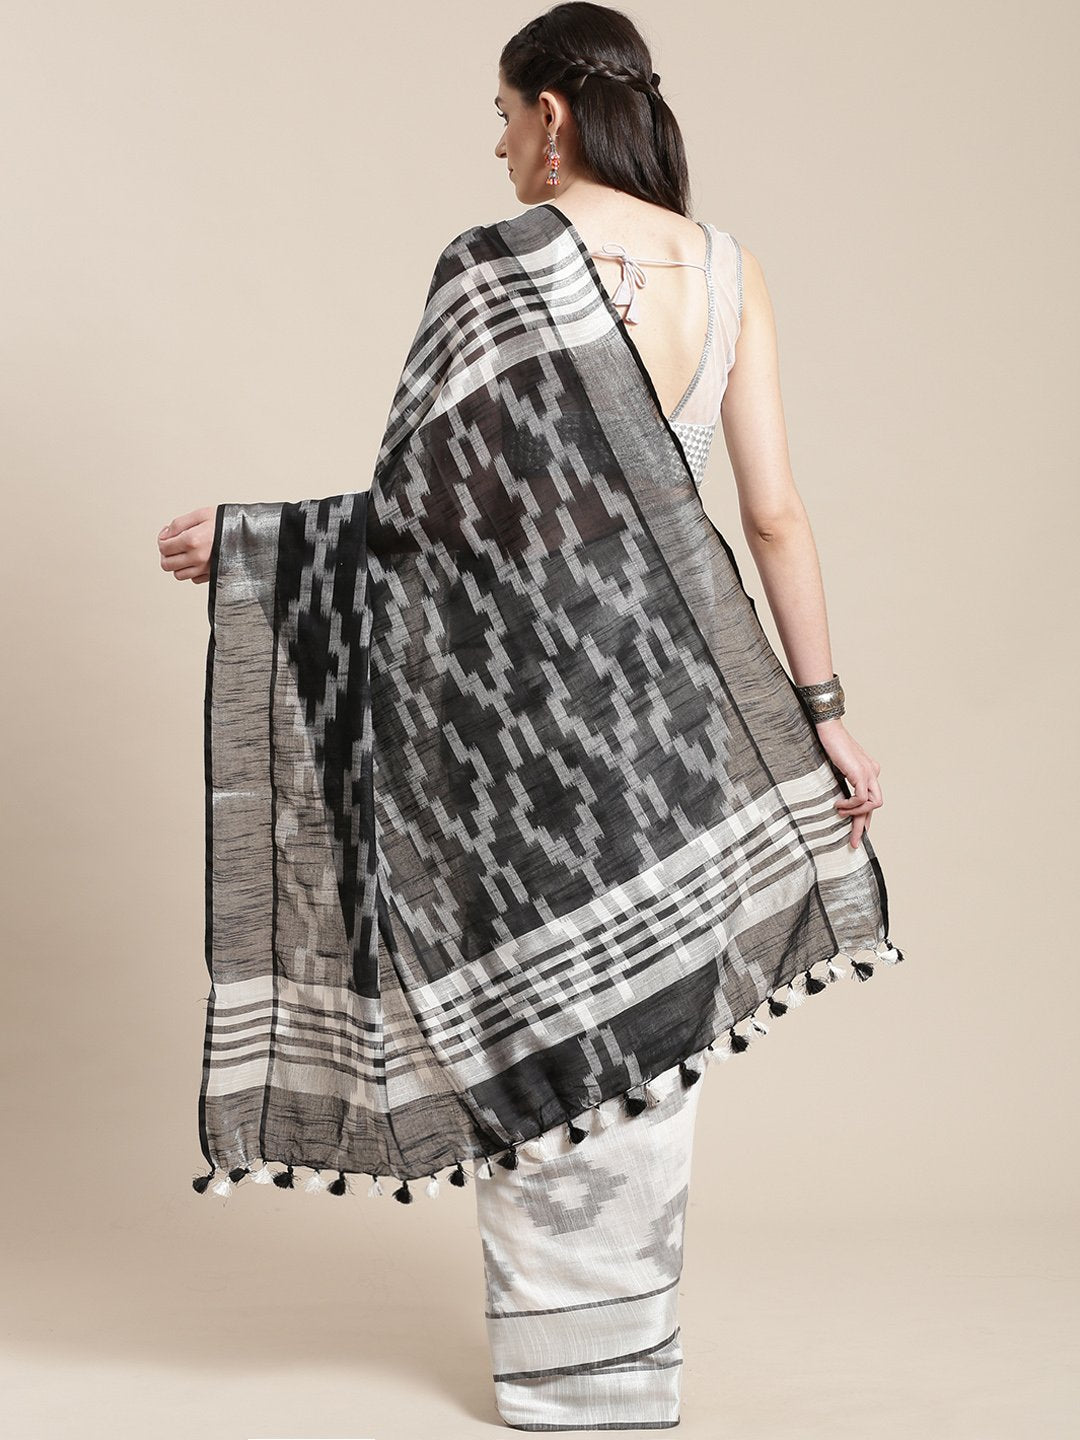 Linen Handwoven Saree and Blouse-Saree-Kalakari India-ALBGSA0036-Hand Woven, Linen, Sarees, Sustainable Fabrics, Traditional Weave-[Linen,Ethnic,wear,Fashionista,Handloom,Handicraft,Indigo,blockprint,block,print,Cotton,Chanderi,Blue, latest,classy,party,bollywood,trendy,summer,style,traditional,formal,elegant,unique,style,hand,block,print, dabu,booti,gift,present,glamorous,affordable,collectible,Sari,Saree,printed, holi, Diwali, birthday, anniversary, sustainable, organic, scarf, online, low pri